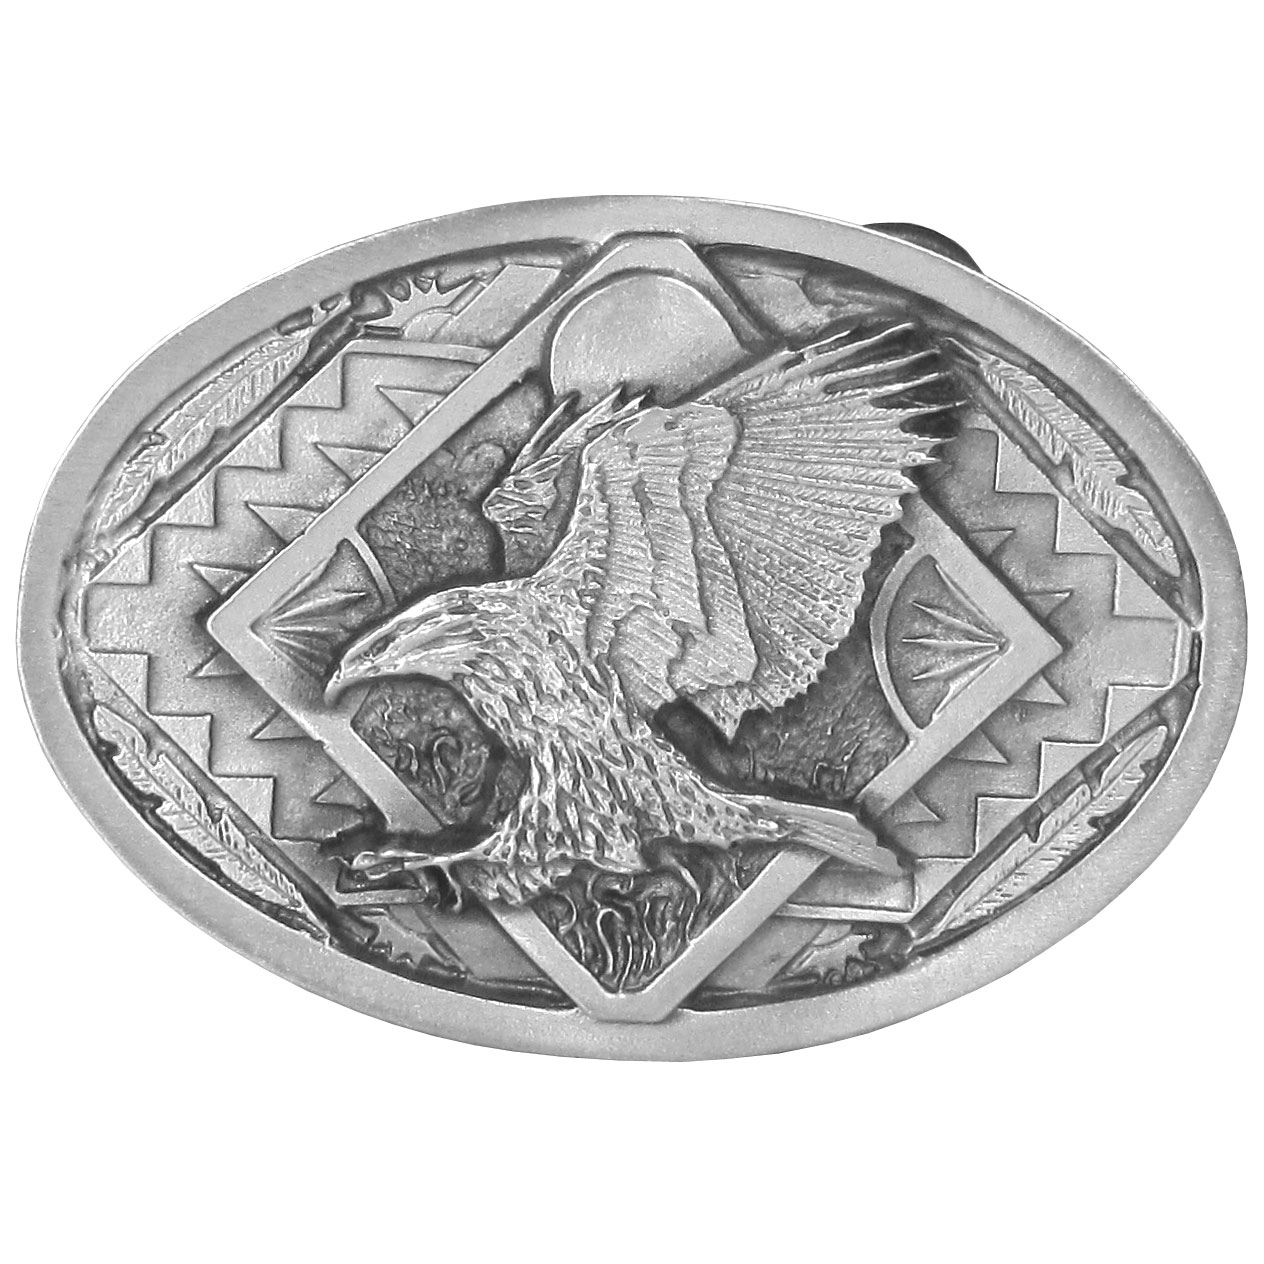 Eagles Antiqued Belt Buckle - Finely sculpted and intricately designed belt buckle. Our unique designs often become collector's items.